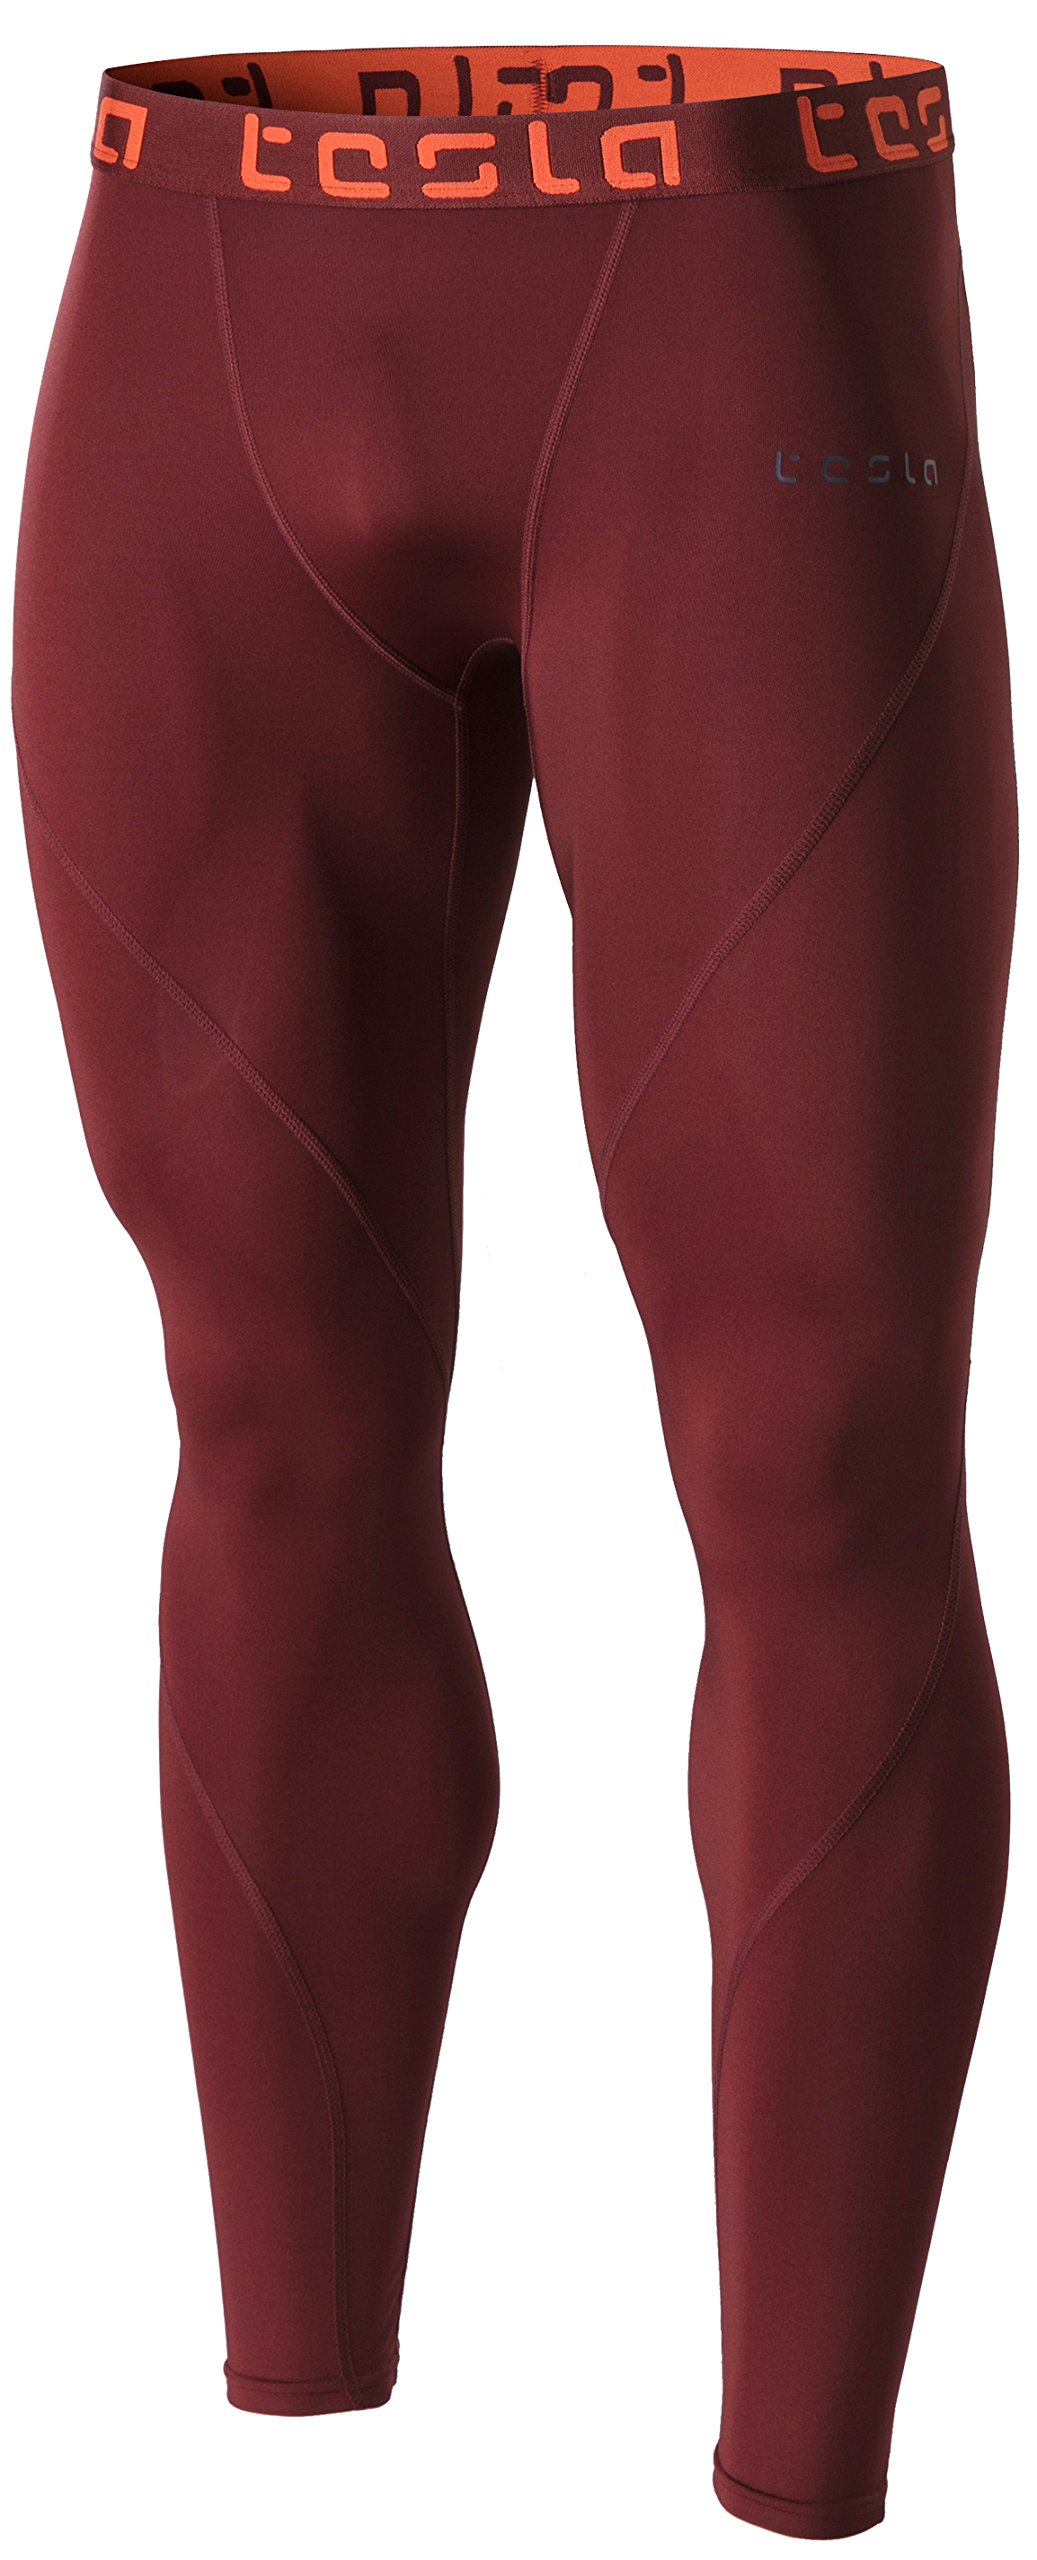 TSLA Men's Compression Pants Running Baselayer Cool Dry Sports Tights, Athletic(mup19) - Brick, Medium by TSLA